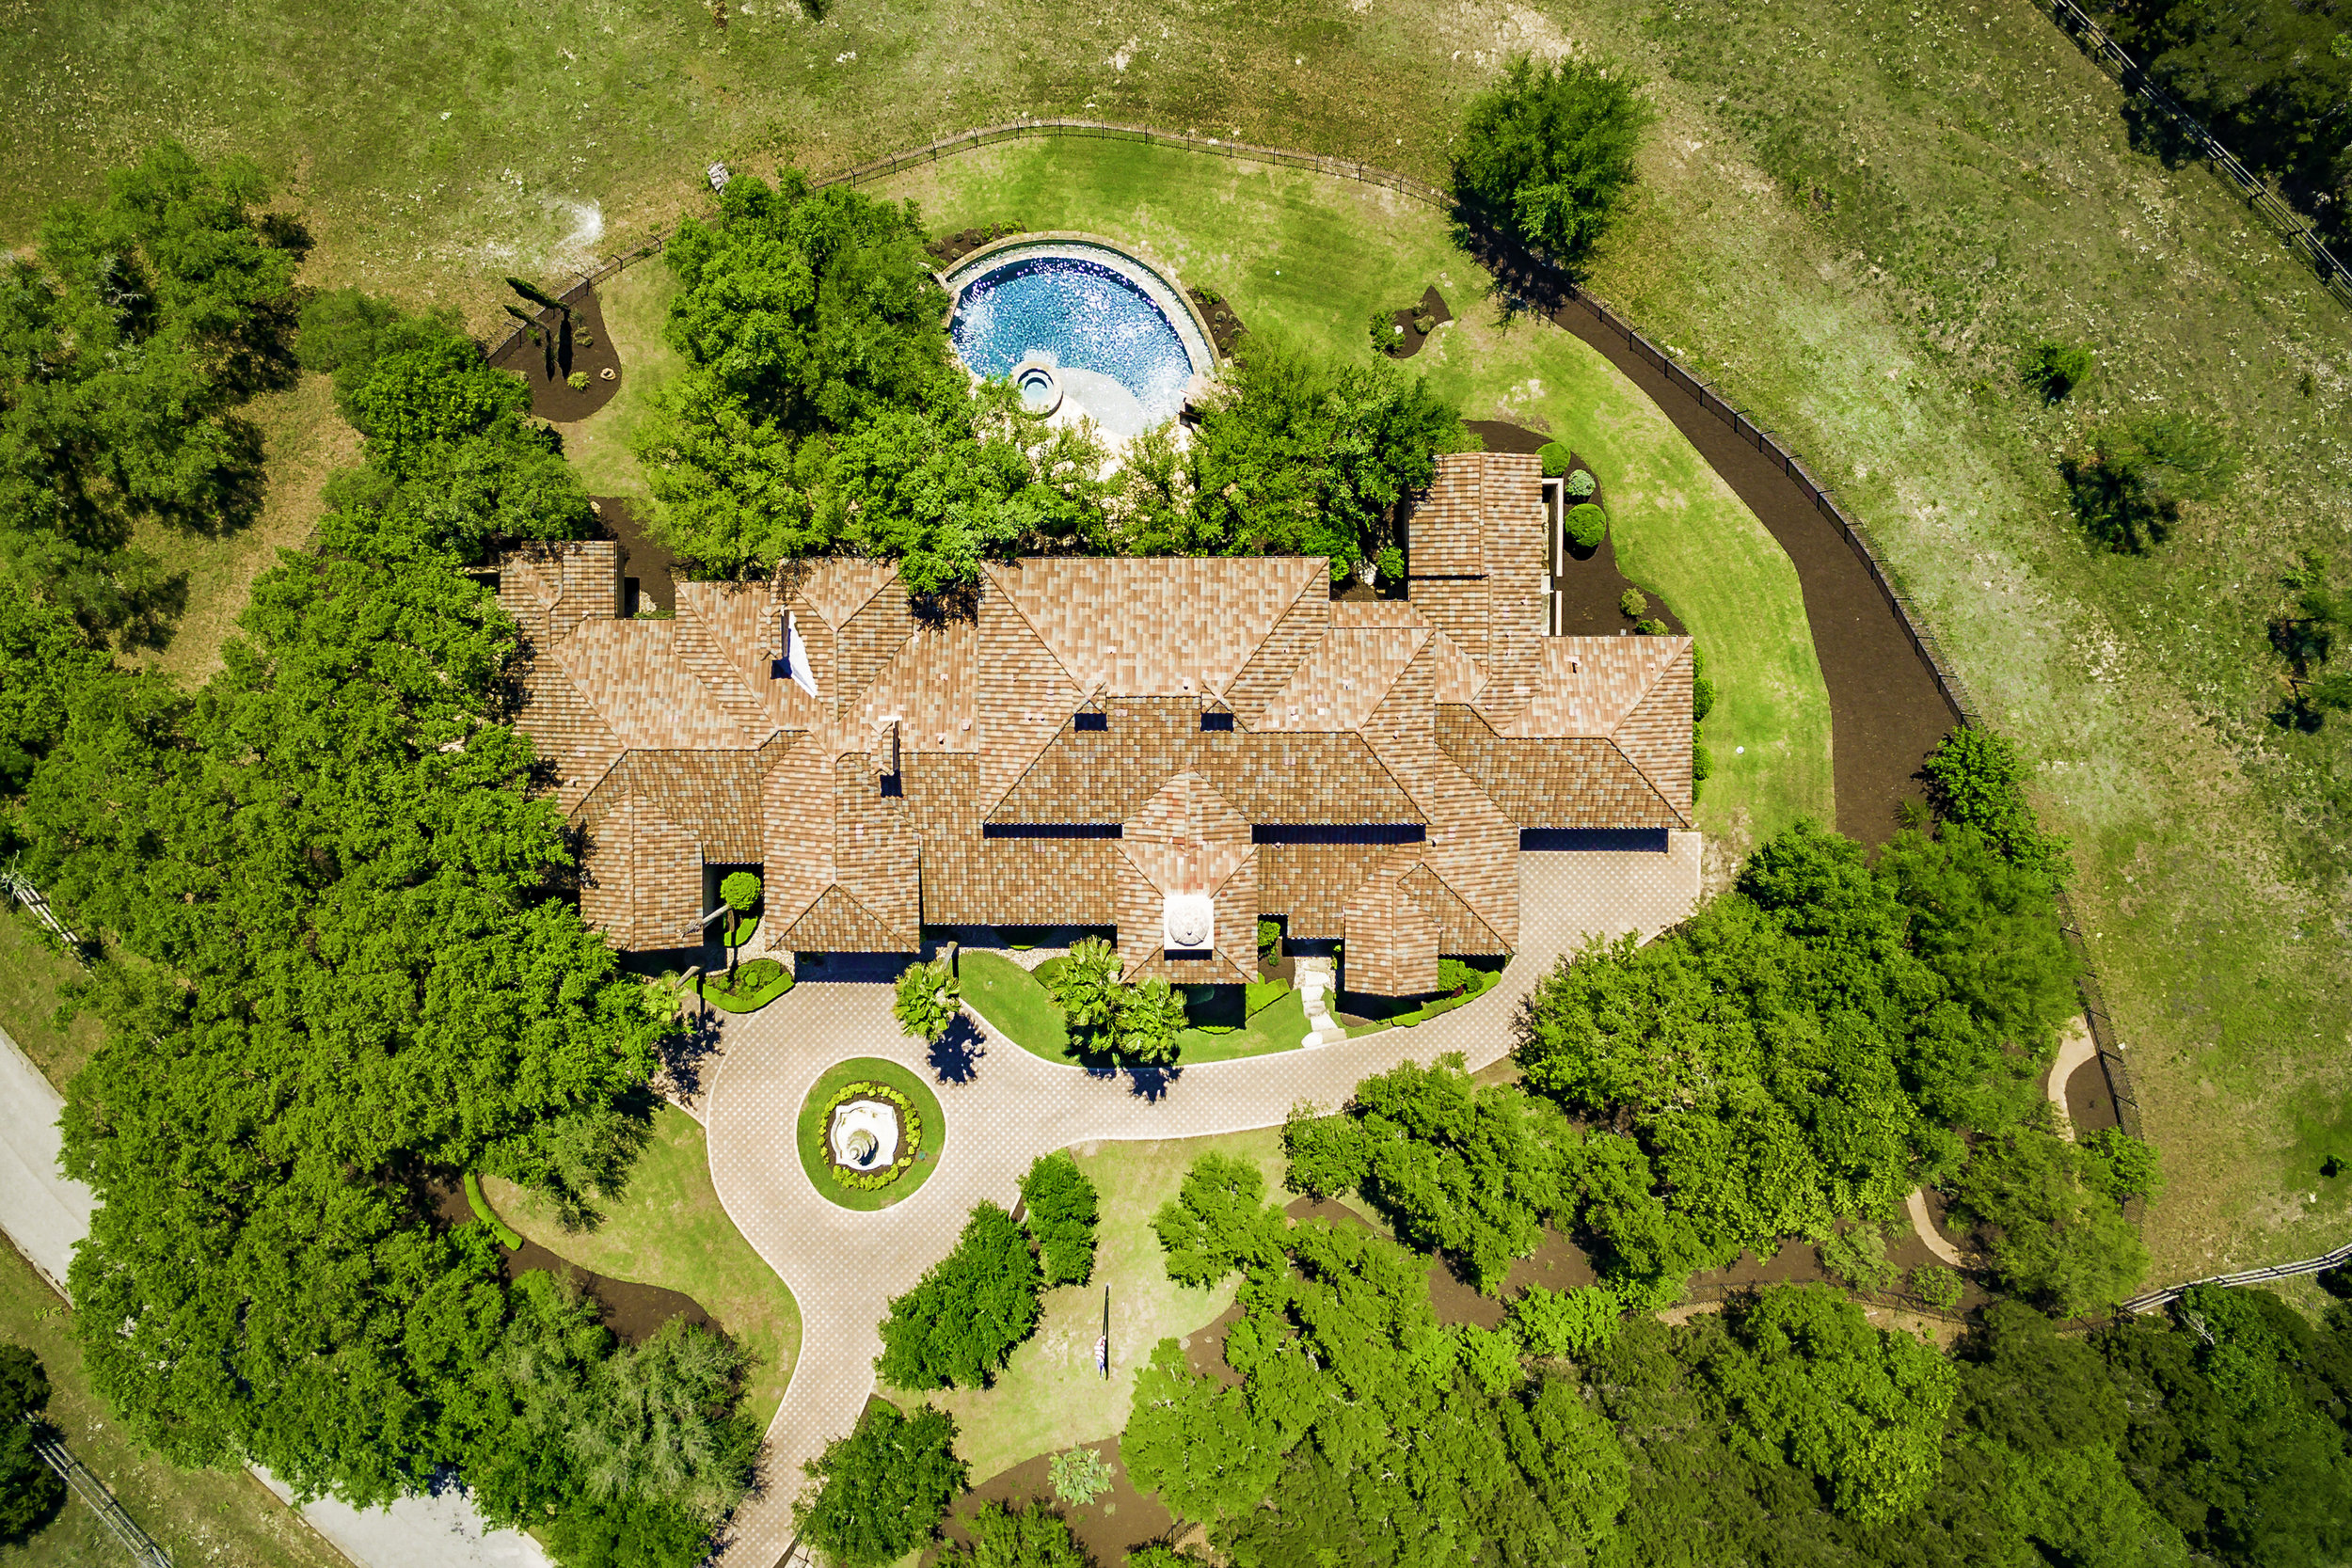 2502 Dominion Hill Aerial - Valerie DiFabio - April 2019-8.jpg